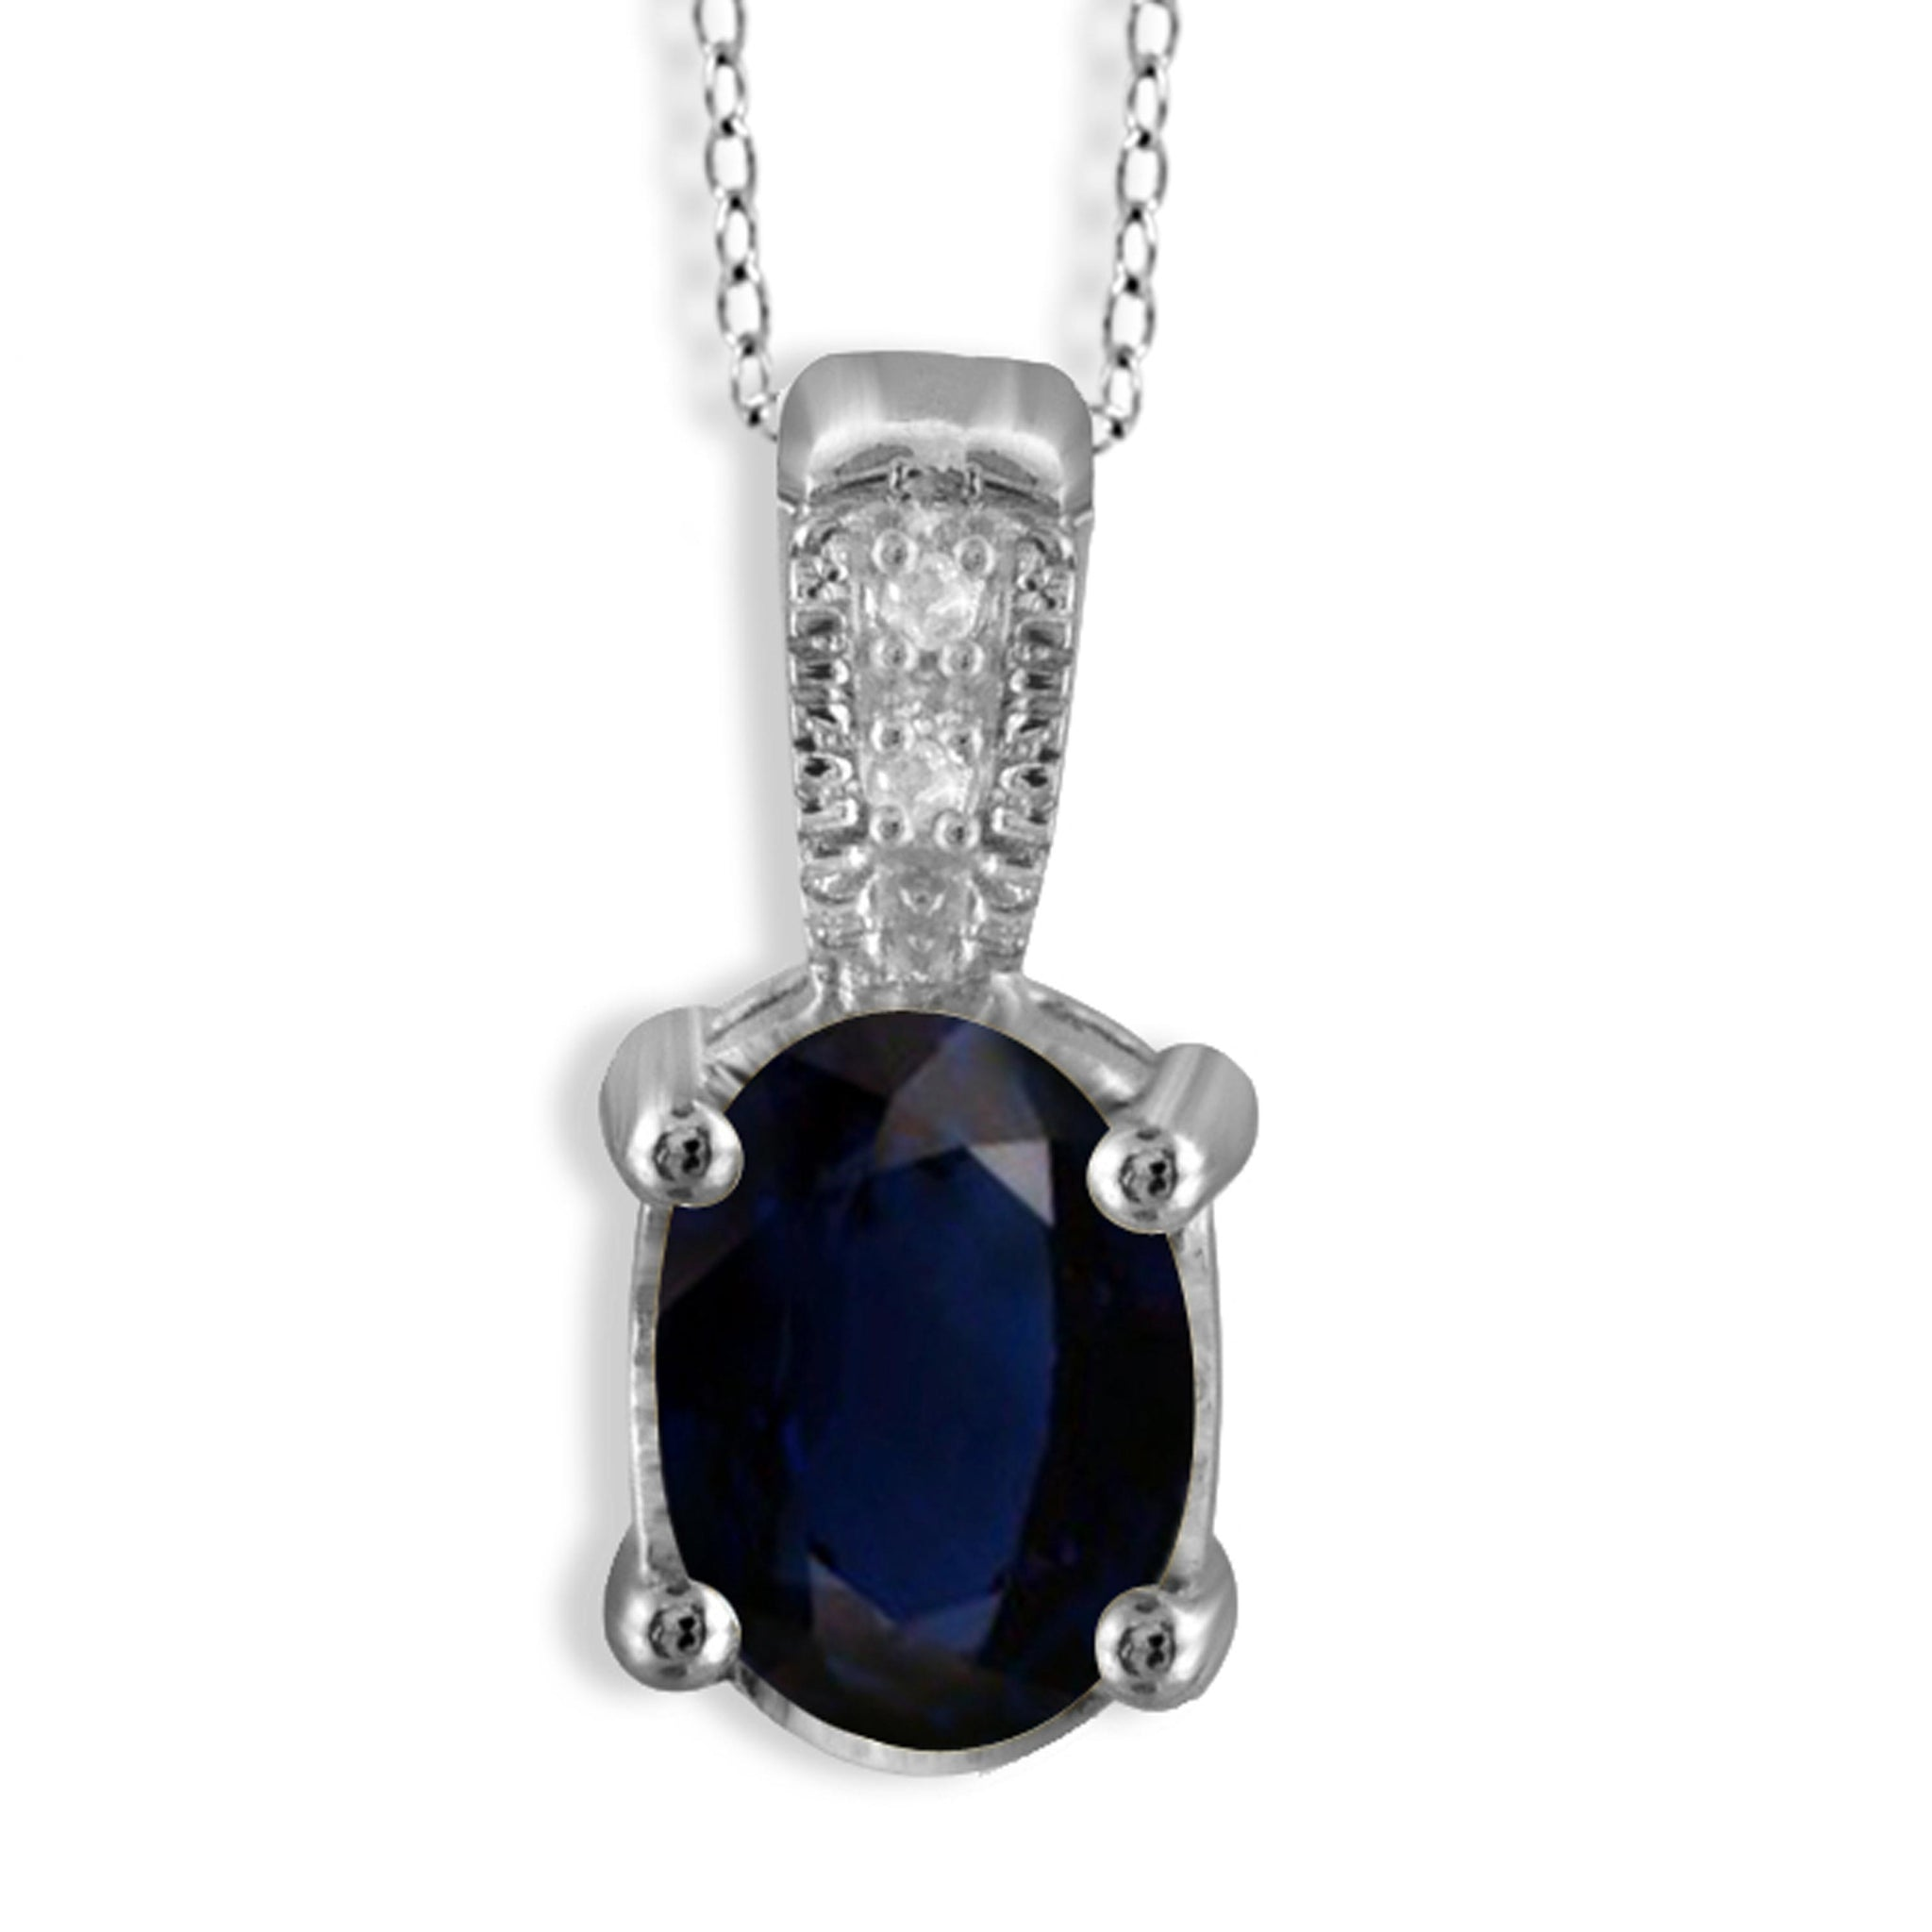 JewelersClub 1.00 Carat T.G.W. Sapphire and White Diamond Accent Sterling Silver Pendant - Assorted Colors